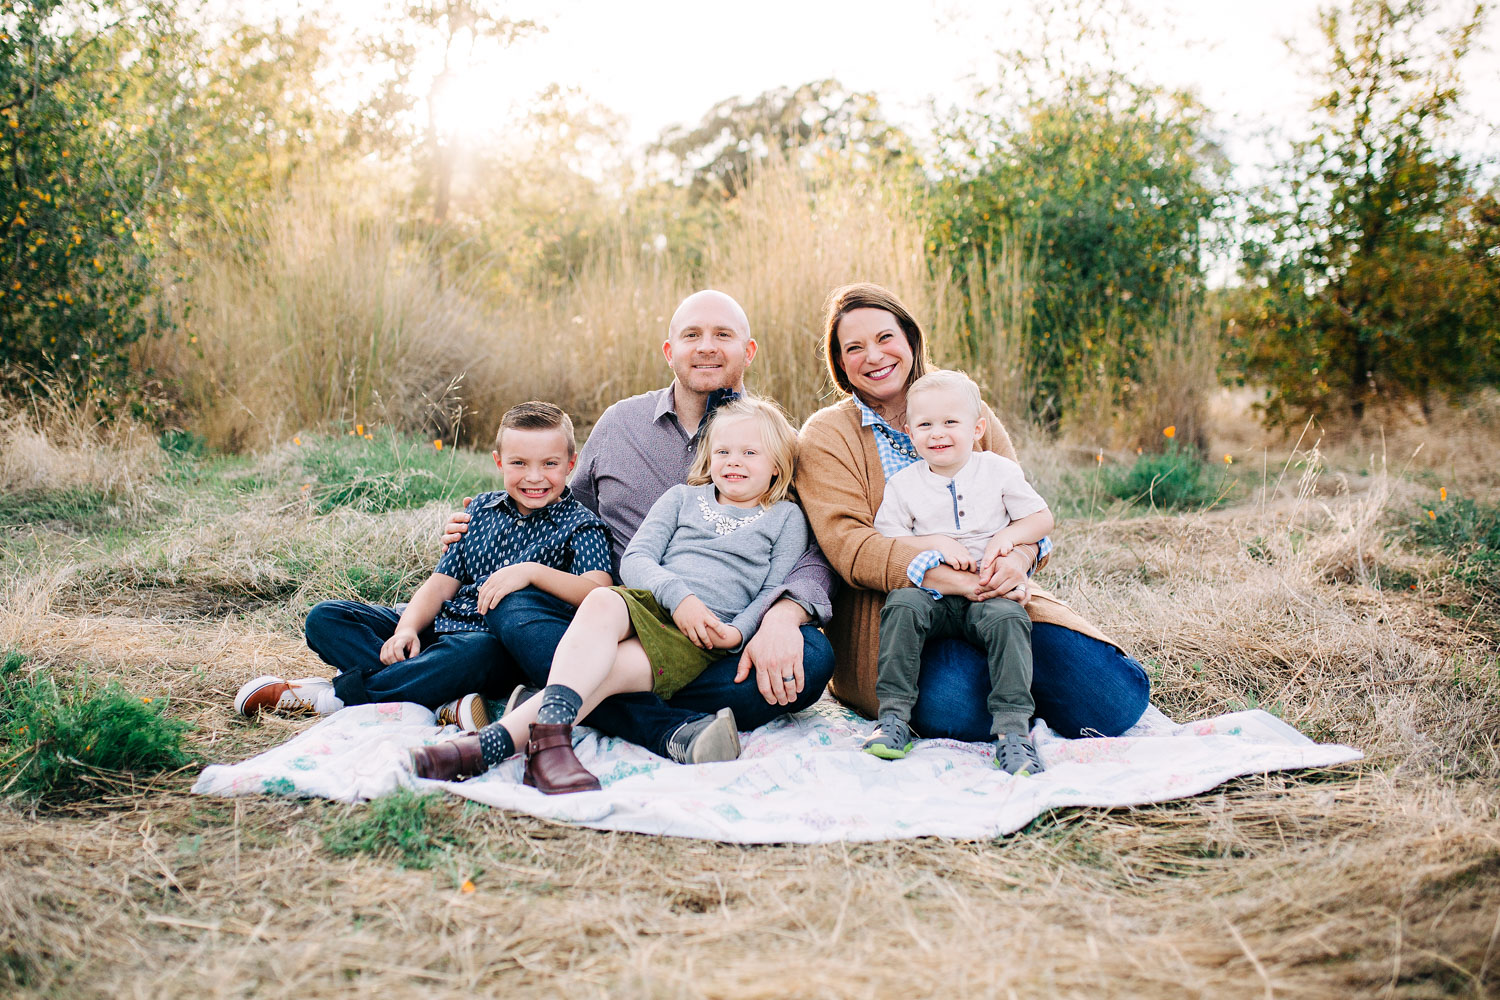 A family of five sit together for pictures with Amy Wright, who is a lifestyle photographer in the sacramento area.